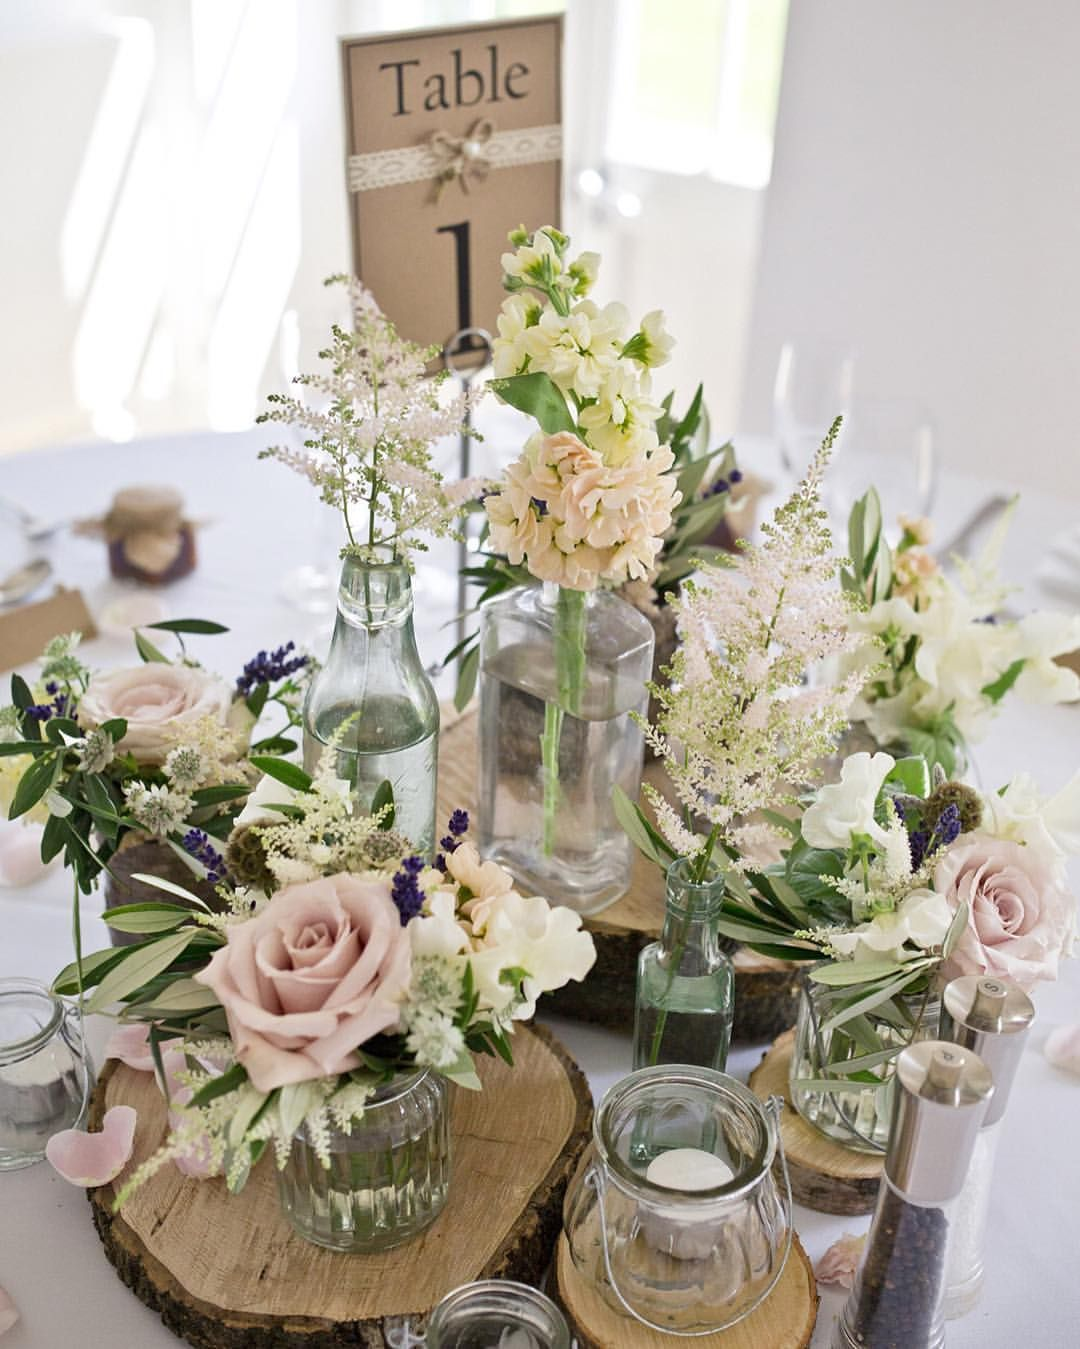 The Prettiest Rustic Table Centres For This Morning's